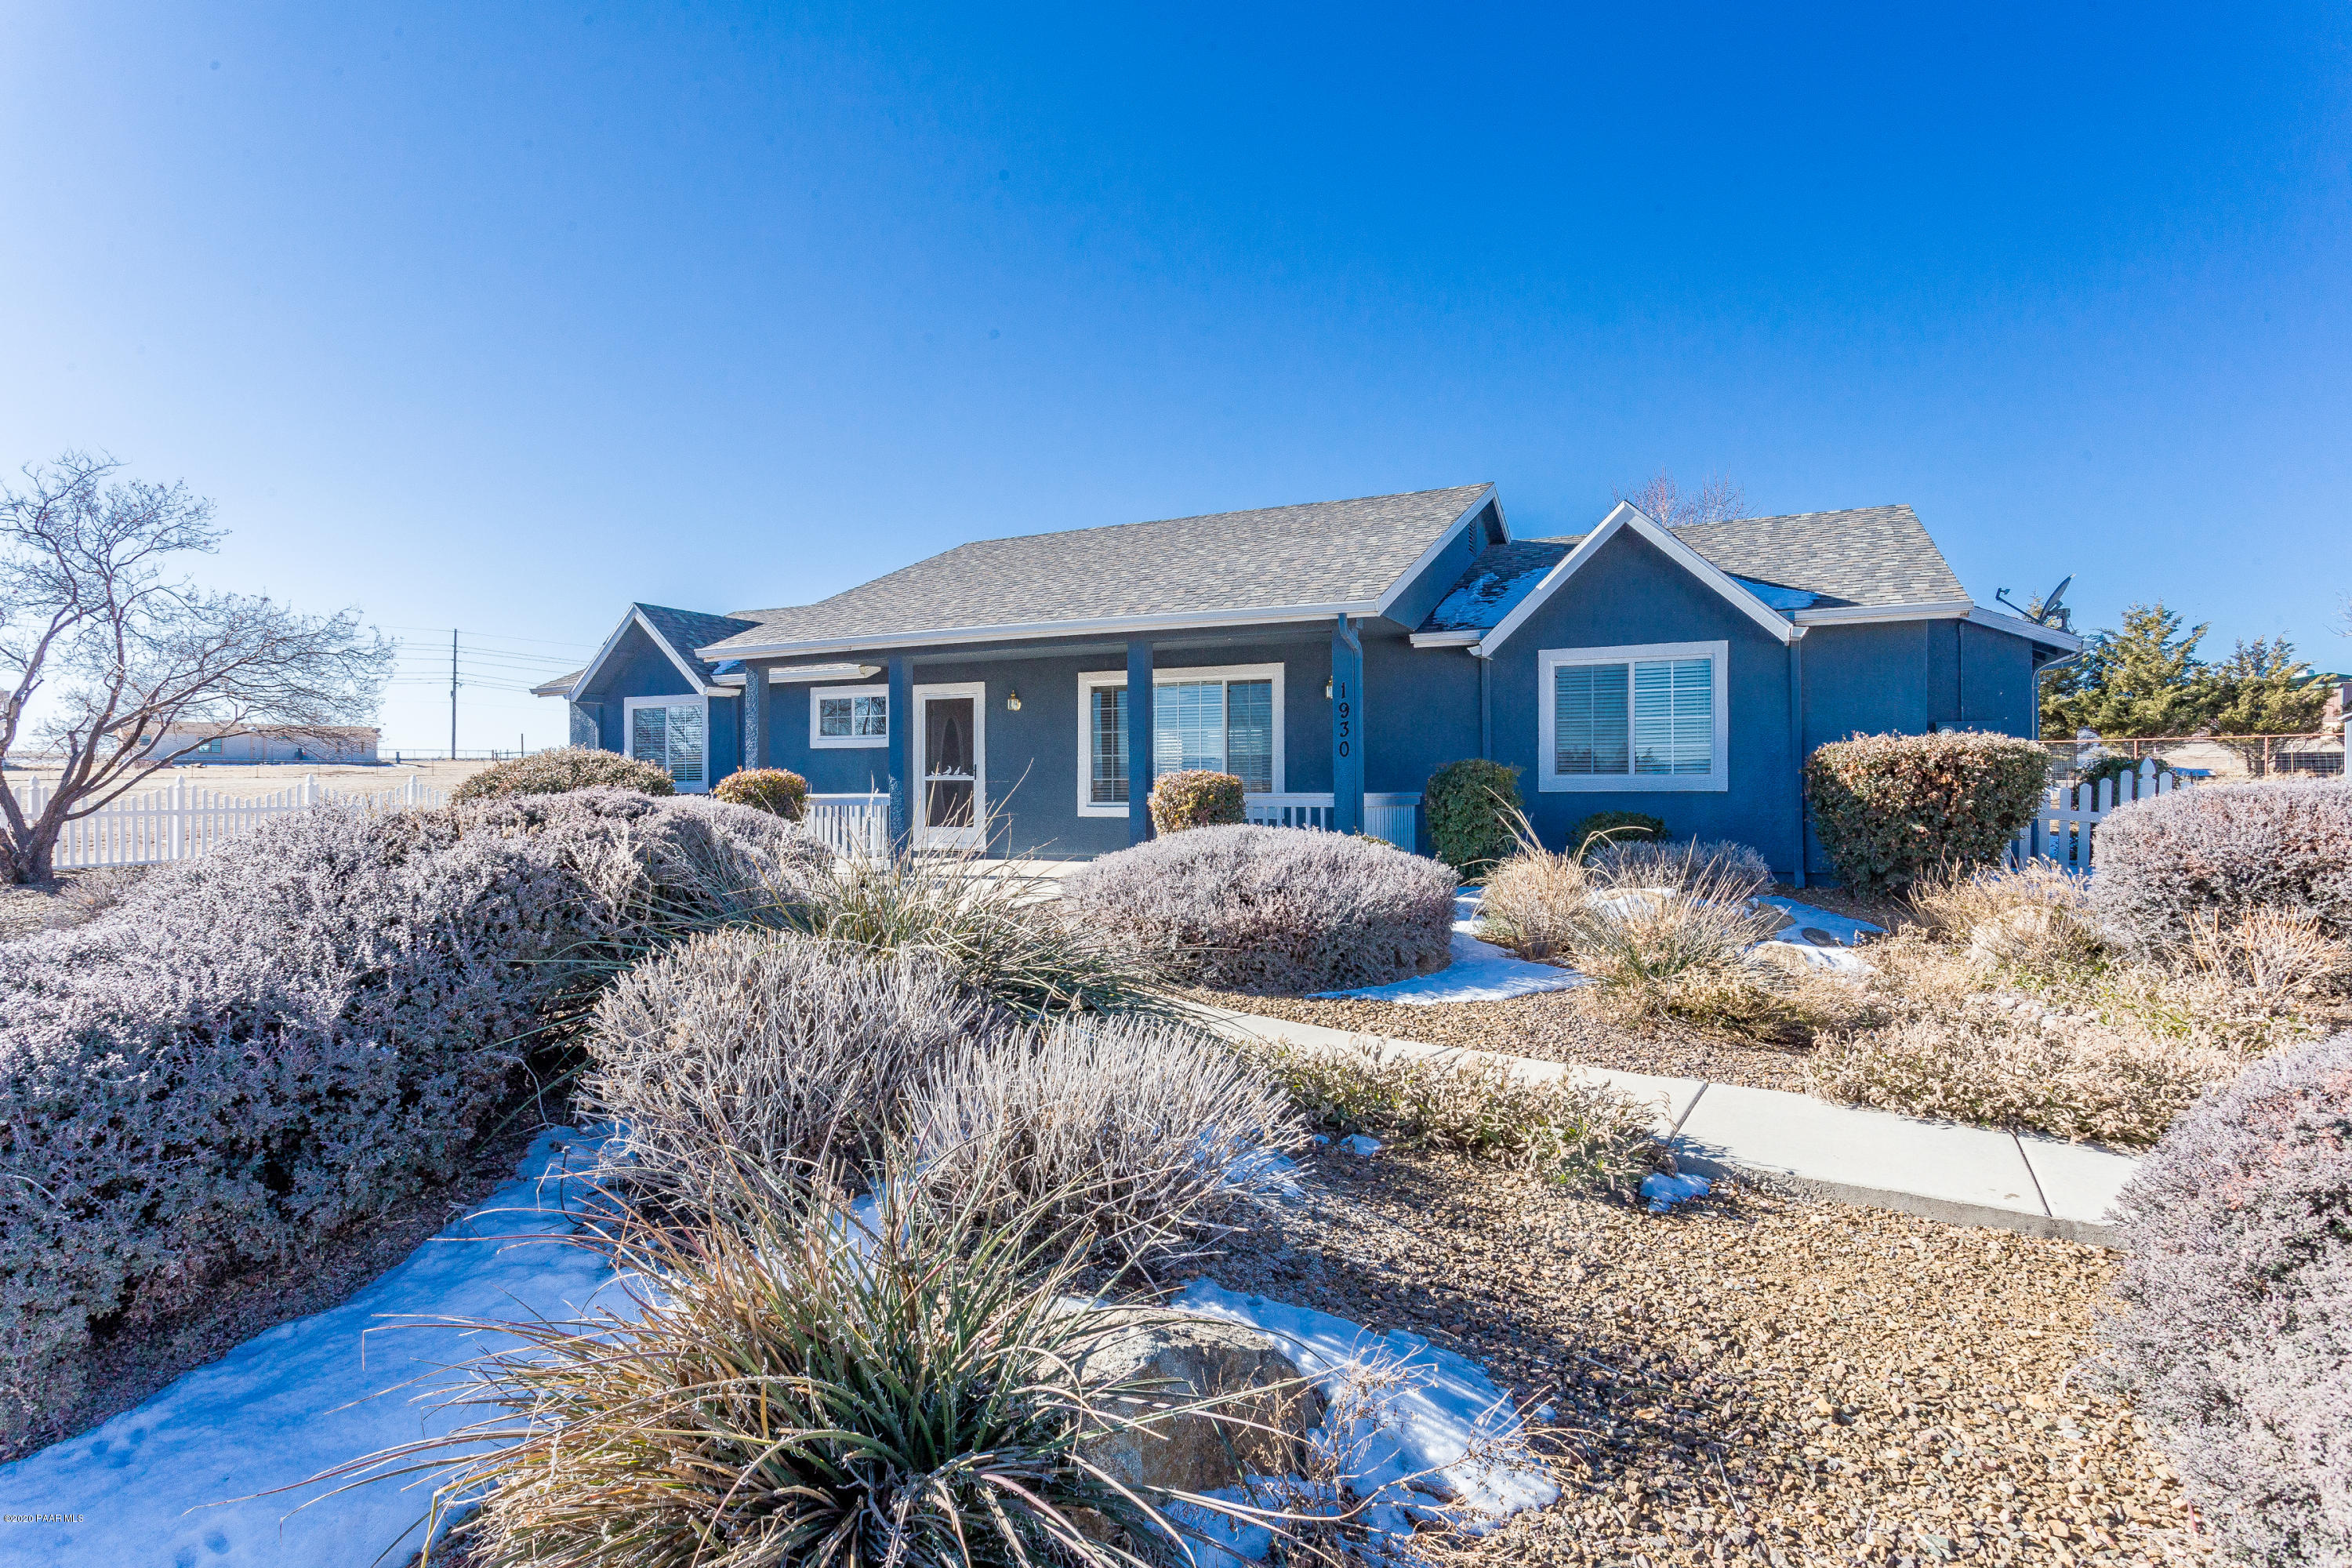 Photo of 1930 South Road 1 West, Chino Valley, AZ 86323